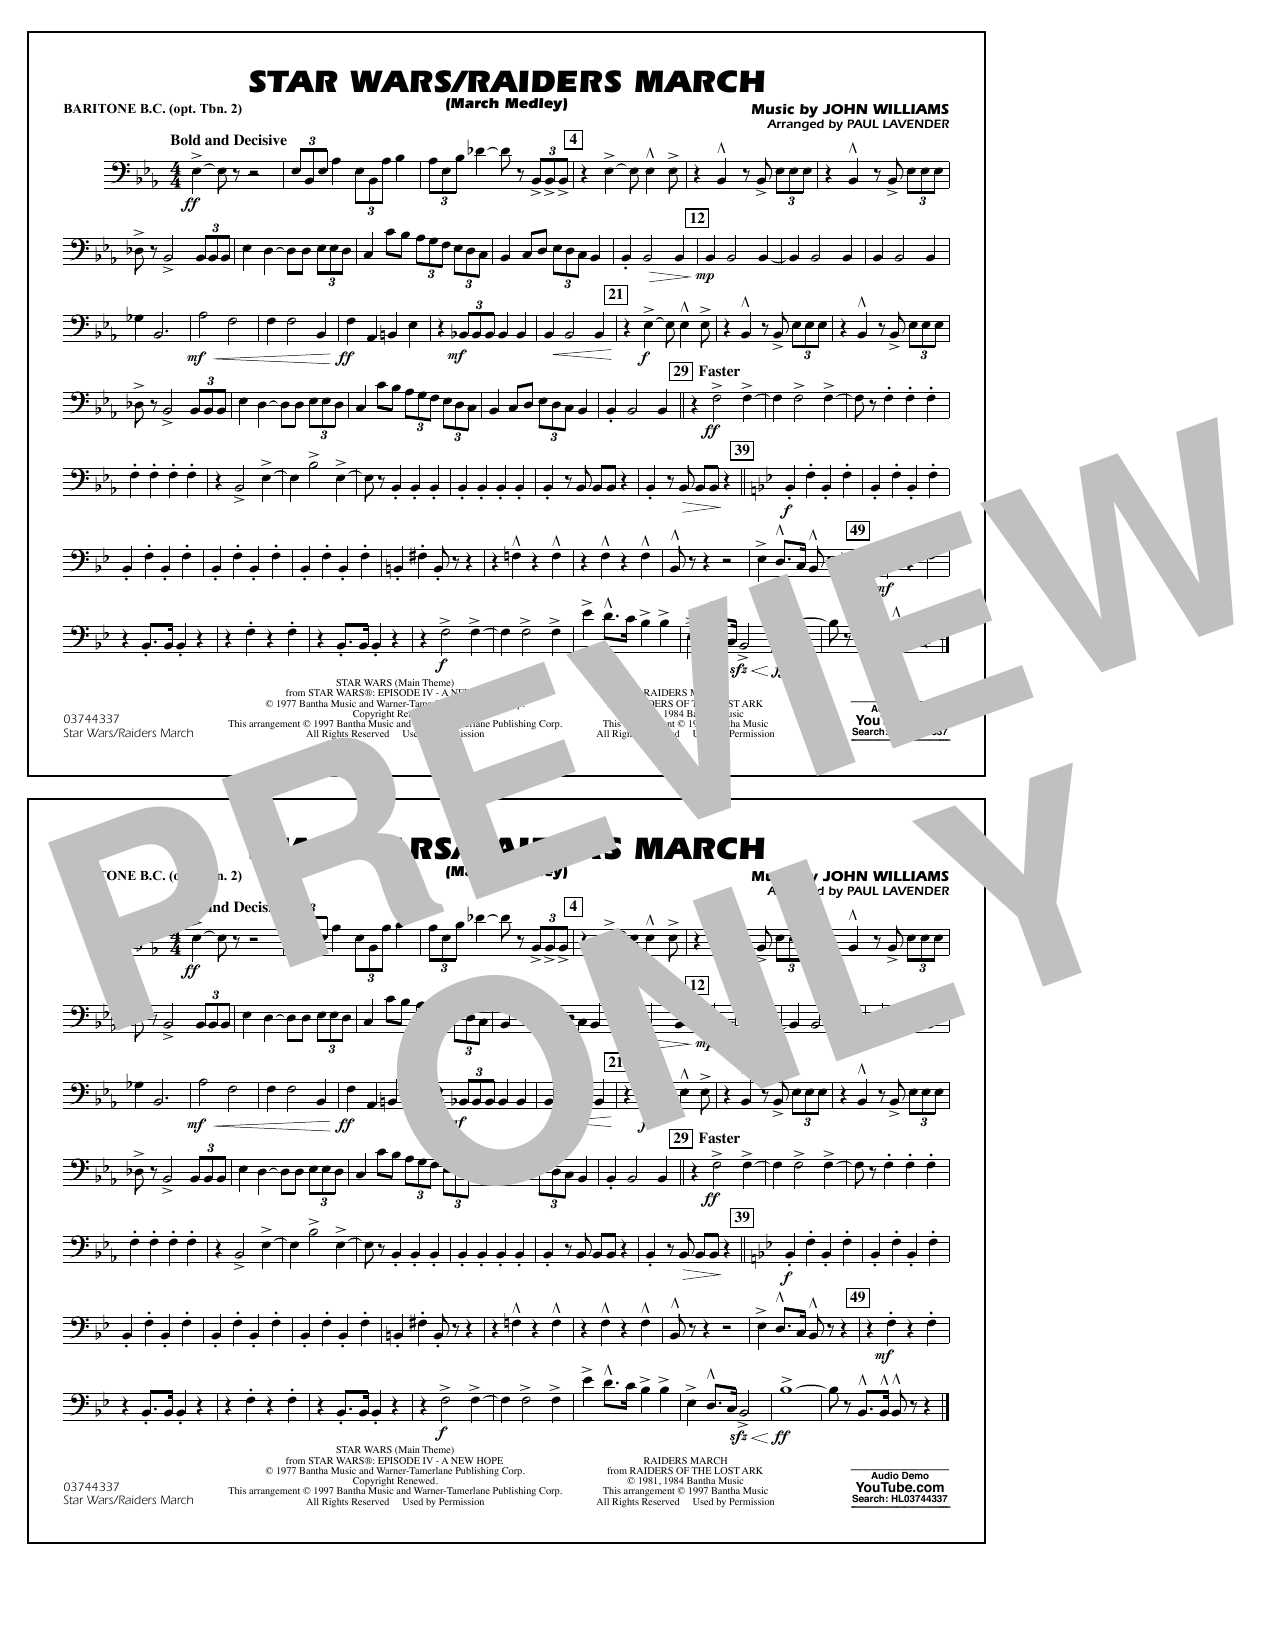 Star Wars/Raiders March - Baritone B.C. (Opt. Tbn. 2) Sheet Music